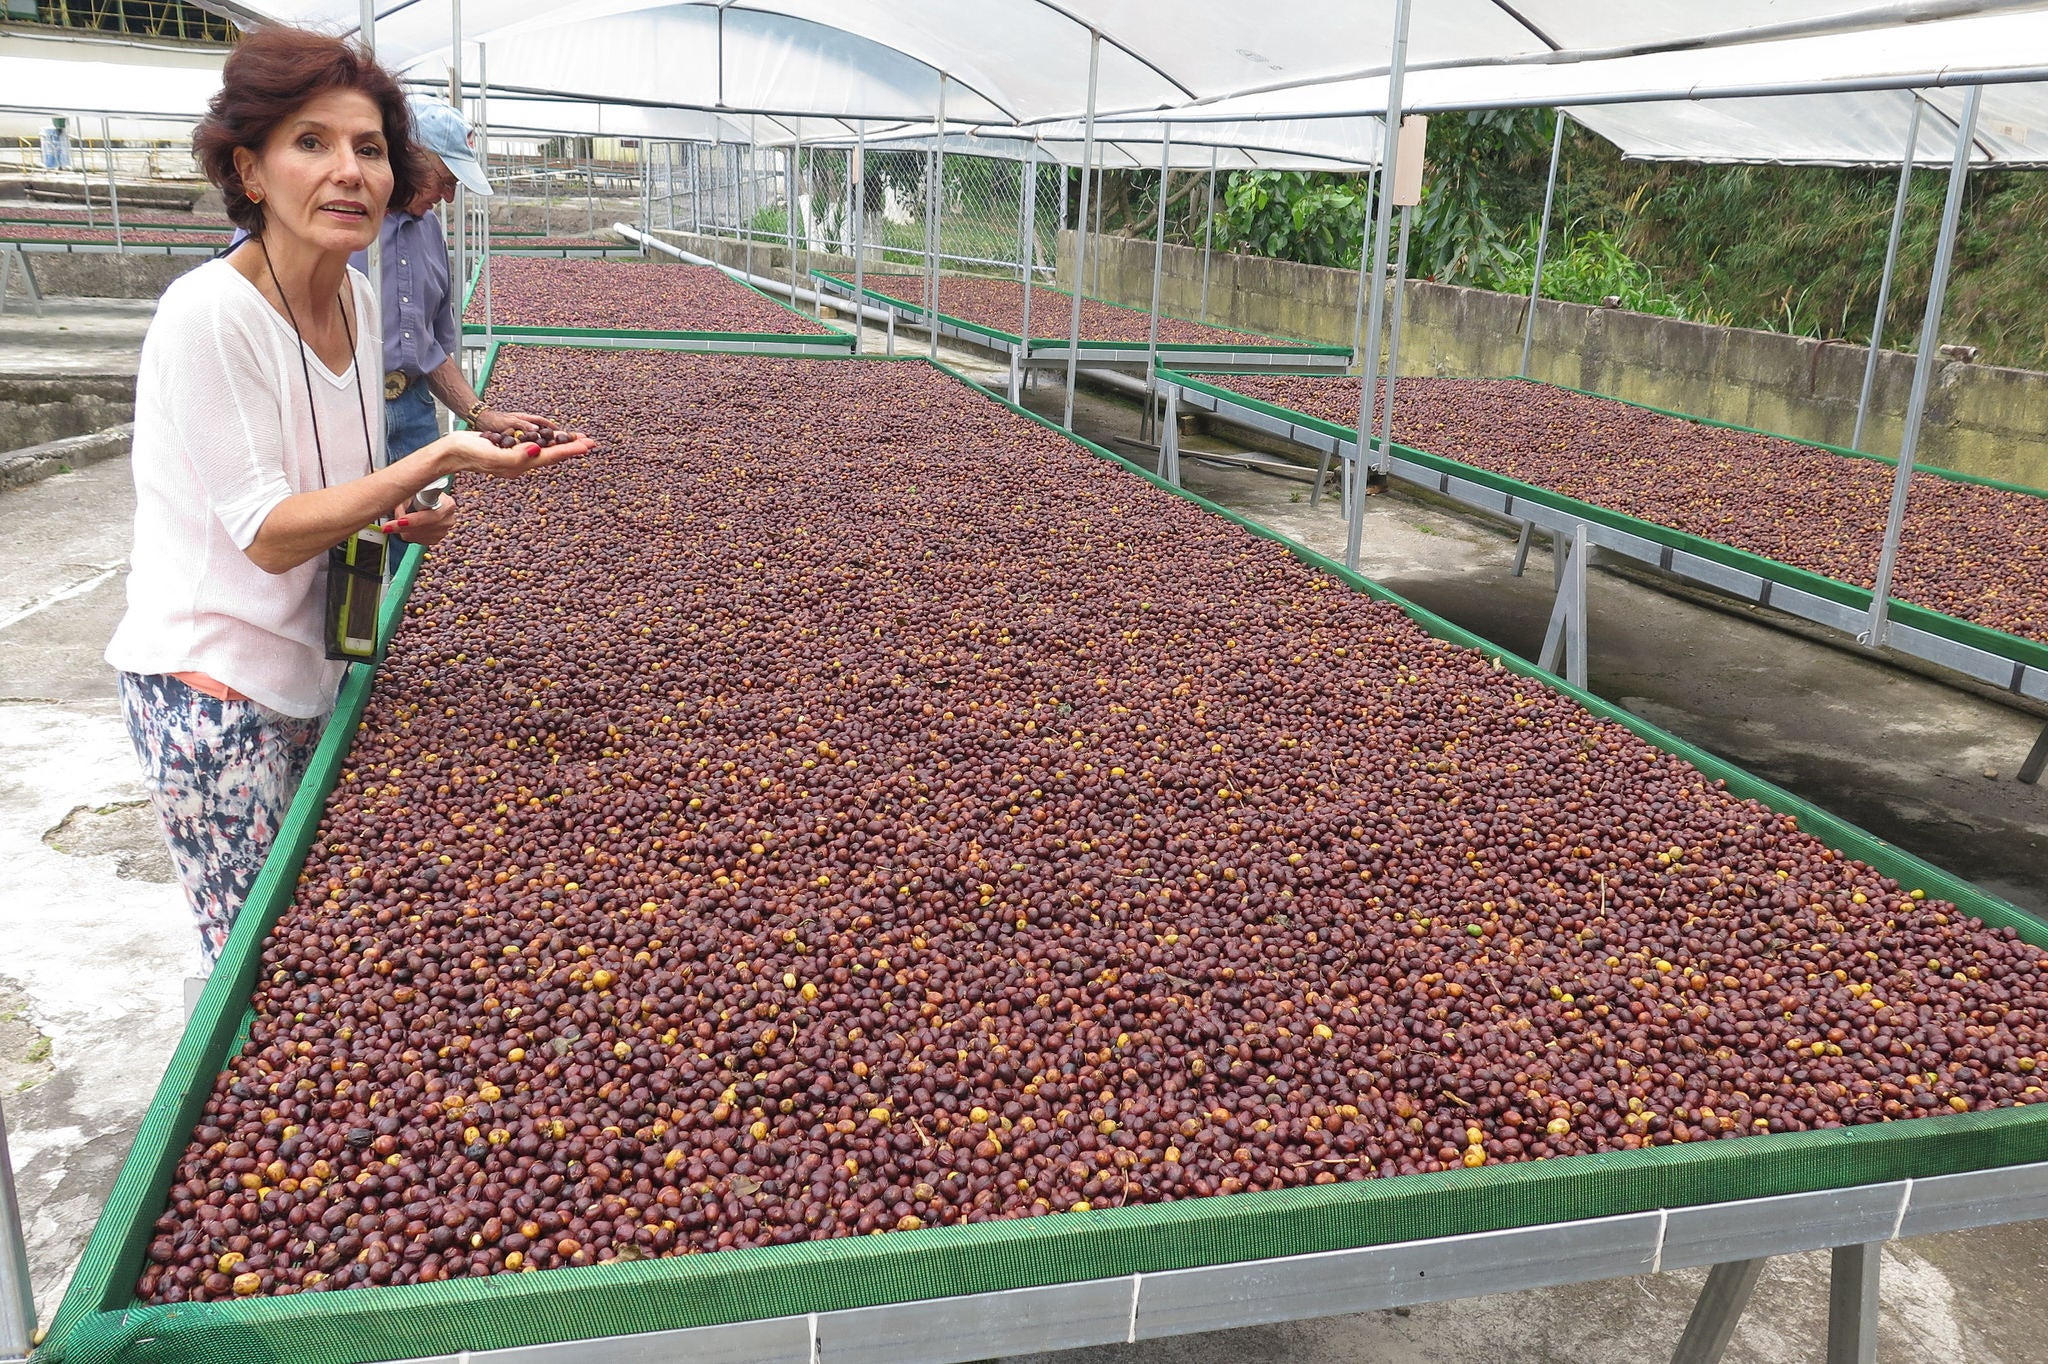 Coffee Stories featuring the Santa Elena Farm of Costa Rica